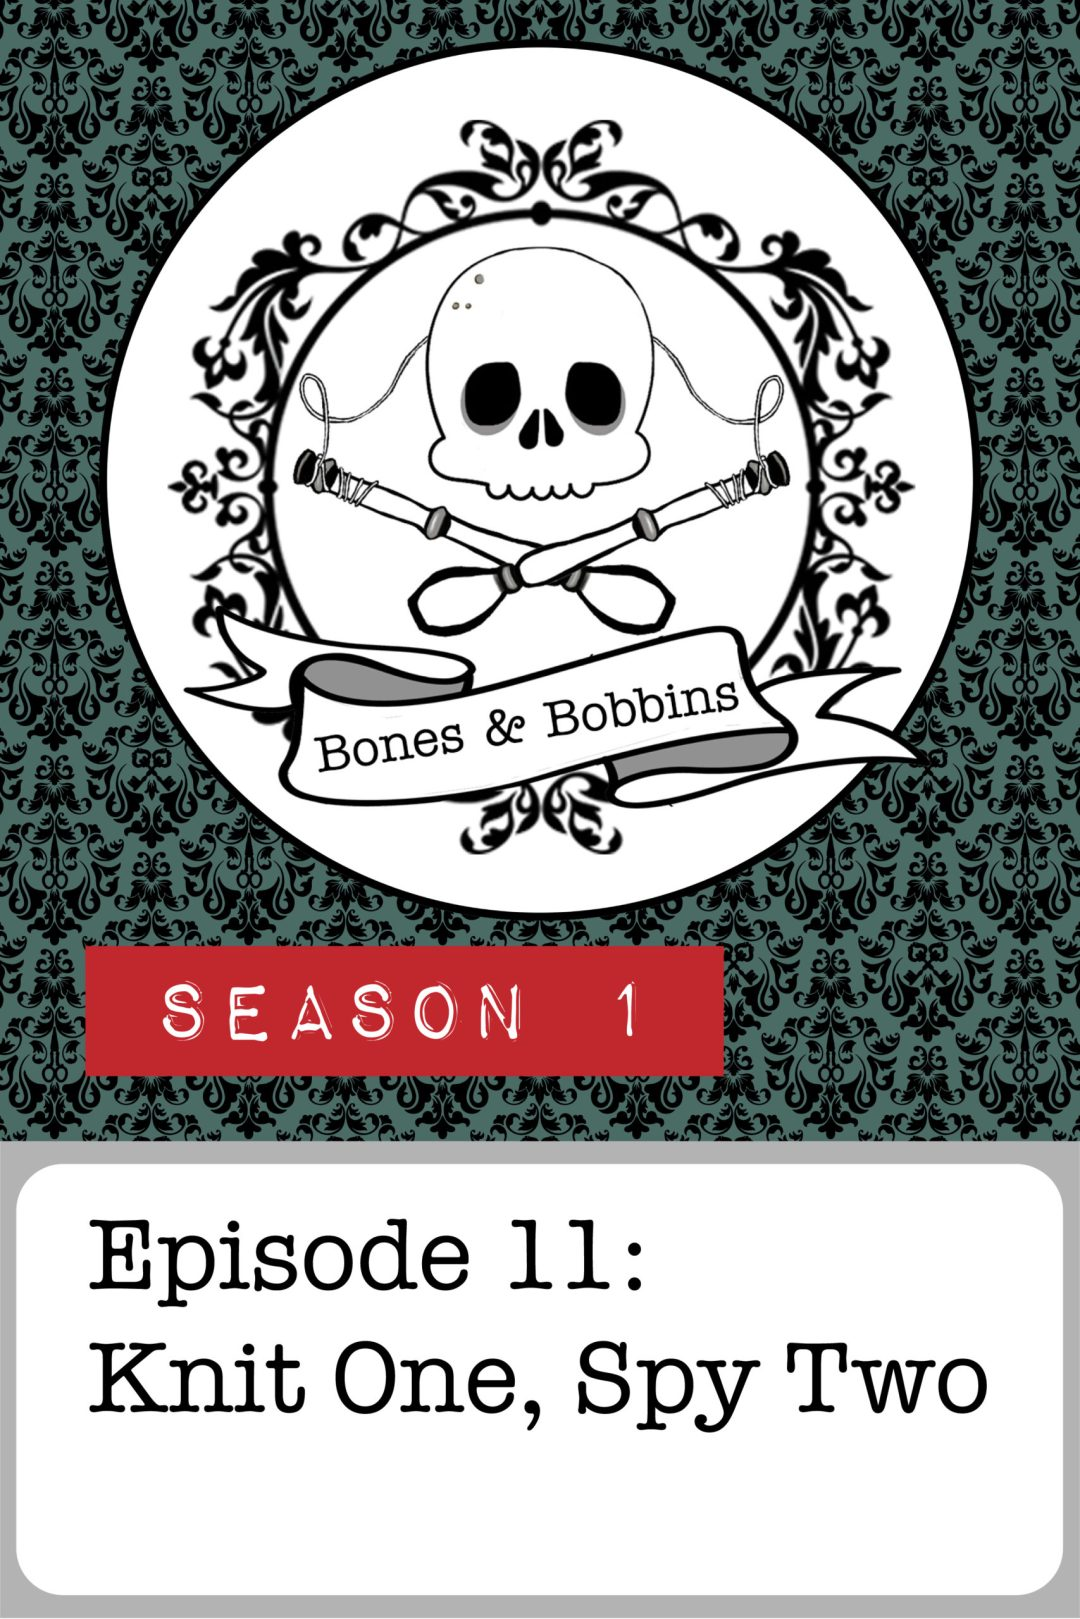 The Bones & Bobbins Podcast, Season 1, Episode 11: Knit One, Spy Two